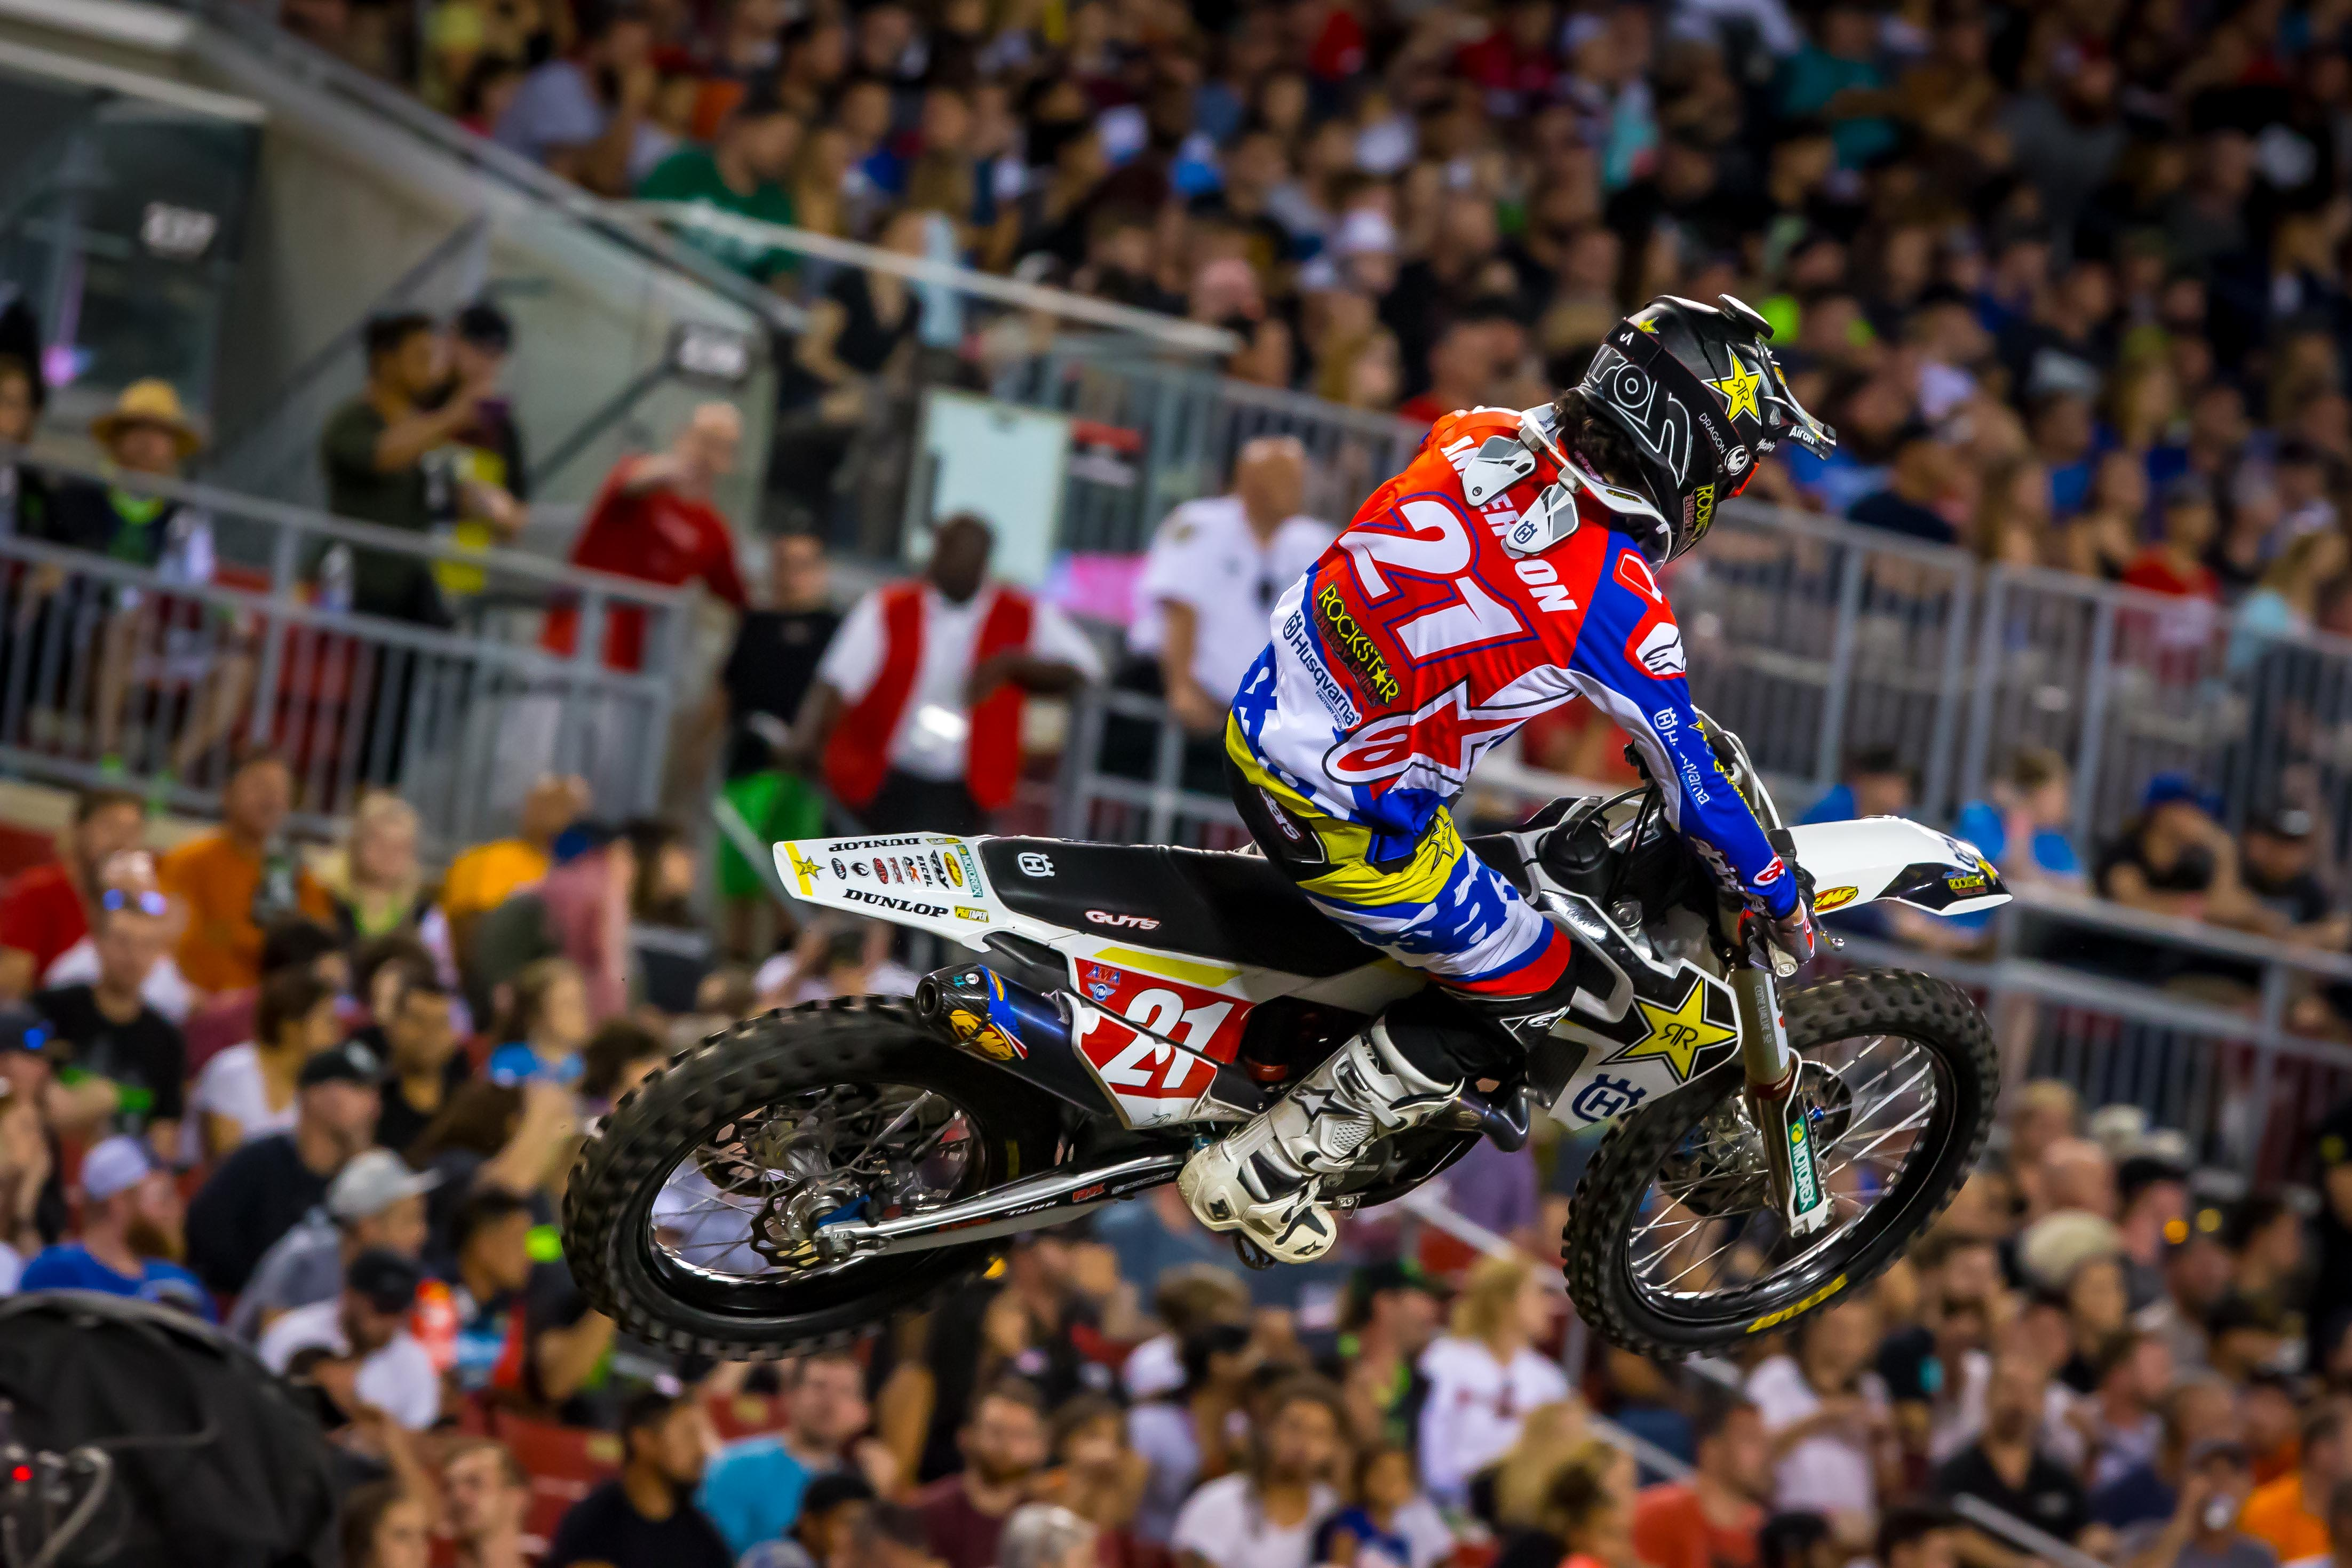 Husqvarna Factory Racing - Anderson maintains a nice points lead in the 450 class.